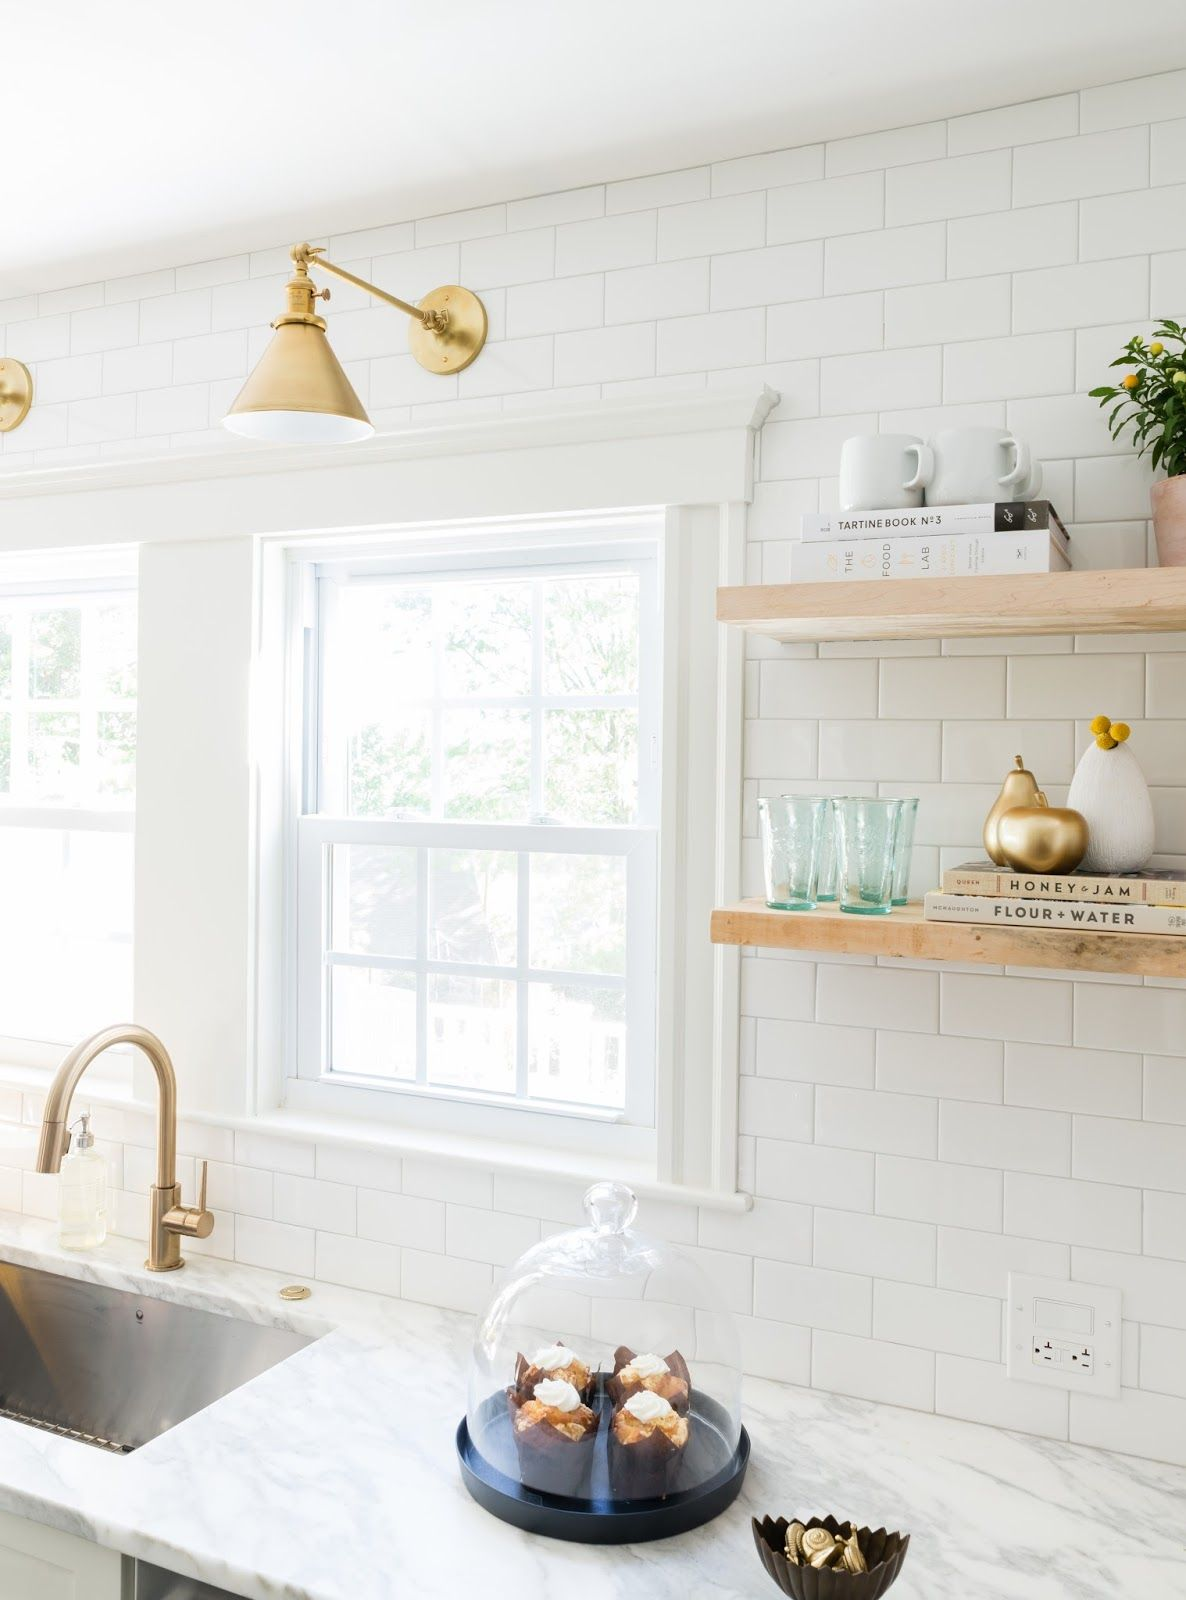 Pin by michelle cox rogers on b r i a r w o o d pinterest white and gold kitchen features white shaker cabinets adorned with brass pulls paired with calcutta marble countertops and a white subway tile backsplash dailygadgetfo Images